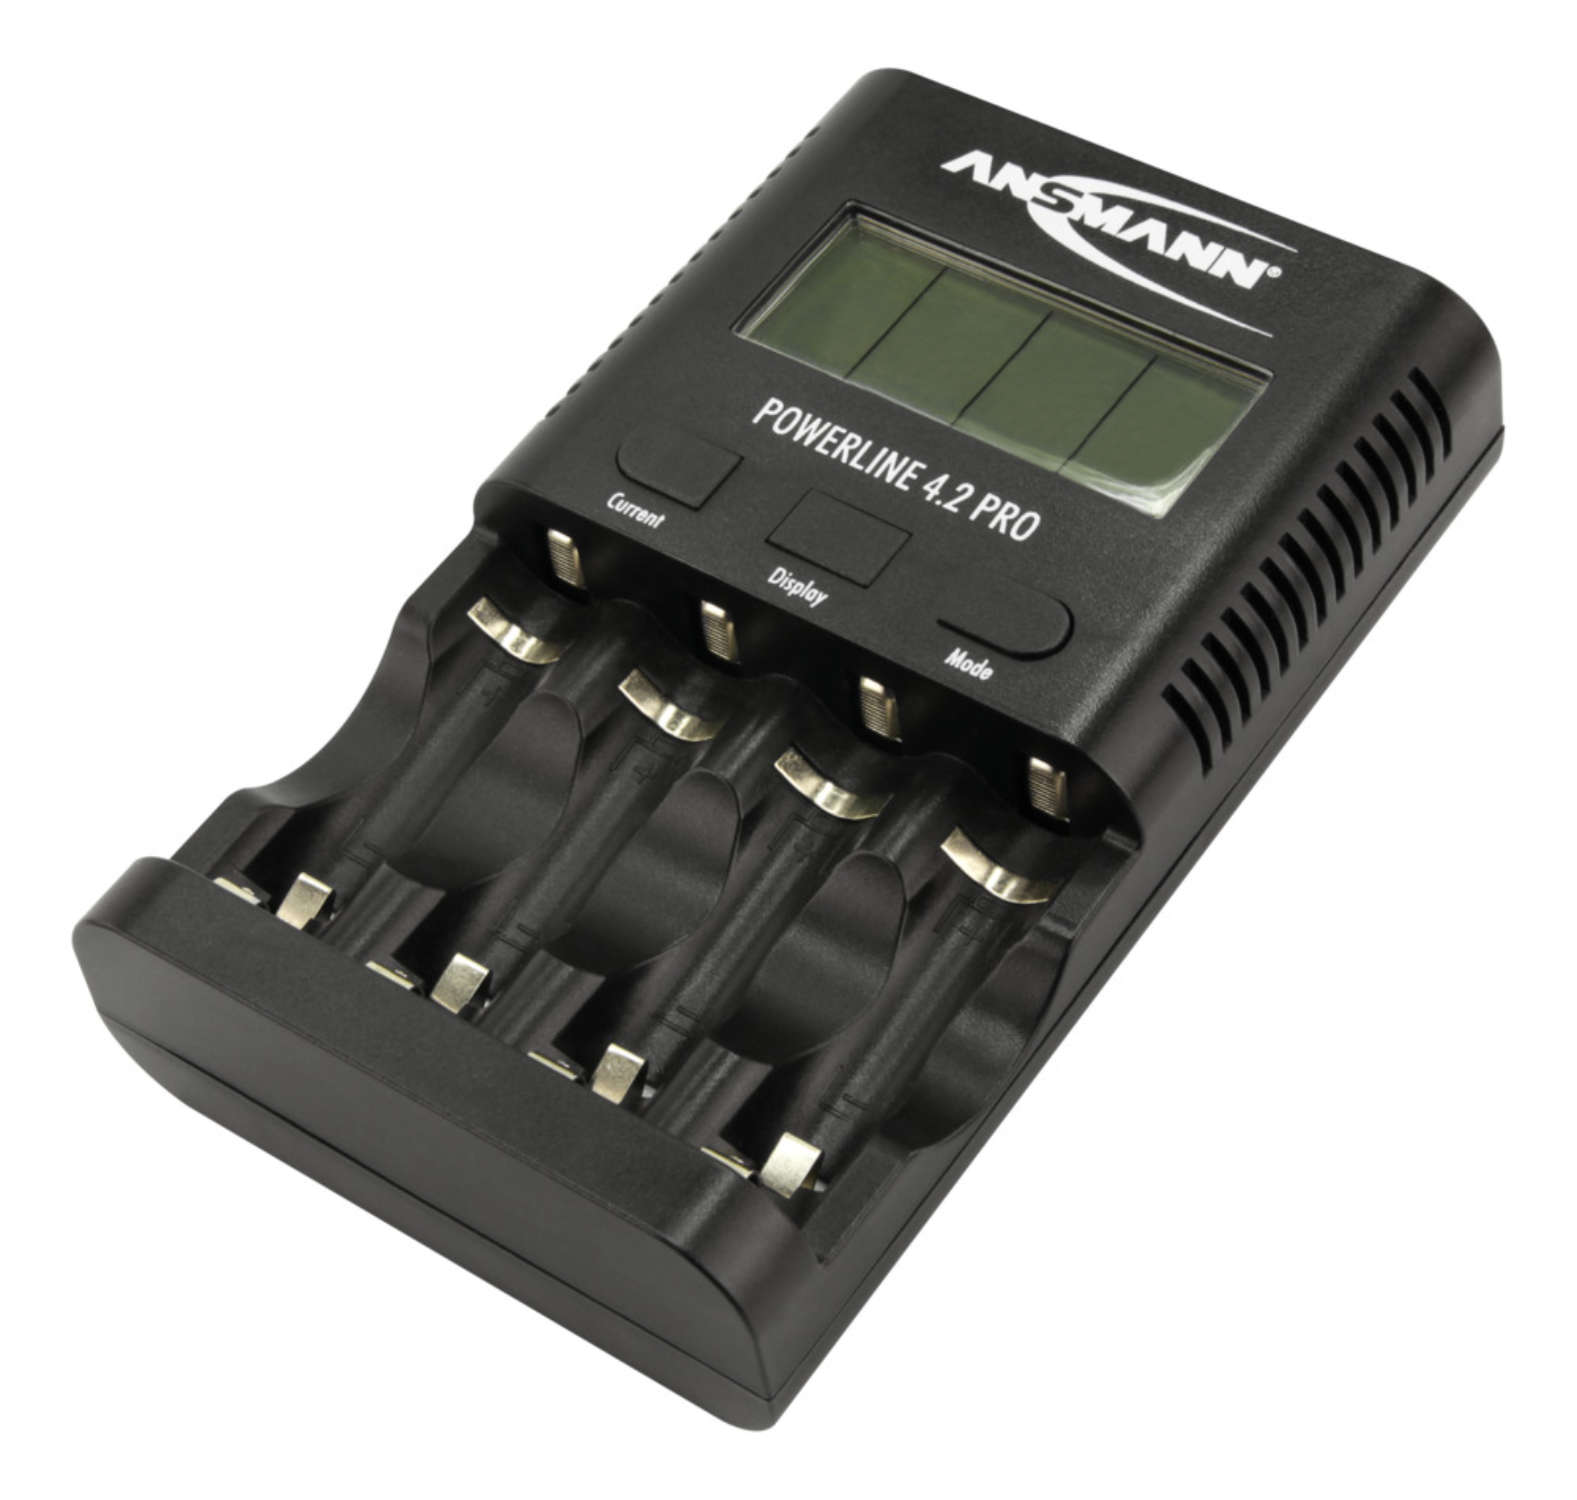 ANSMANN Powerline 4 Pro-W-UK-EU, Consumer Battery Chargers, Powerline Series